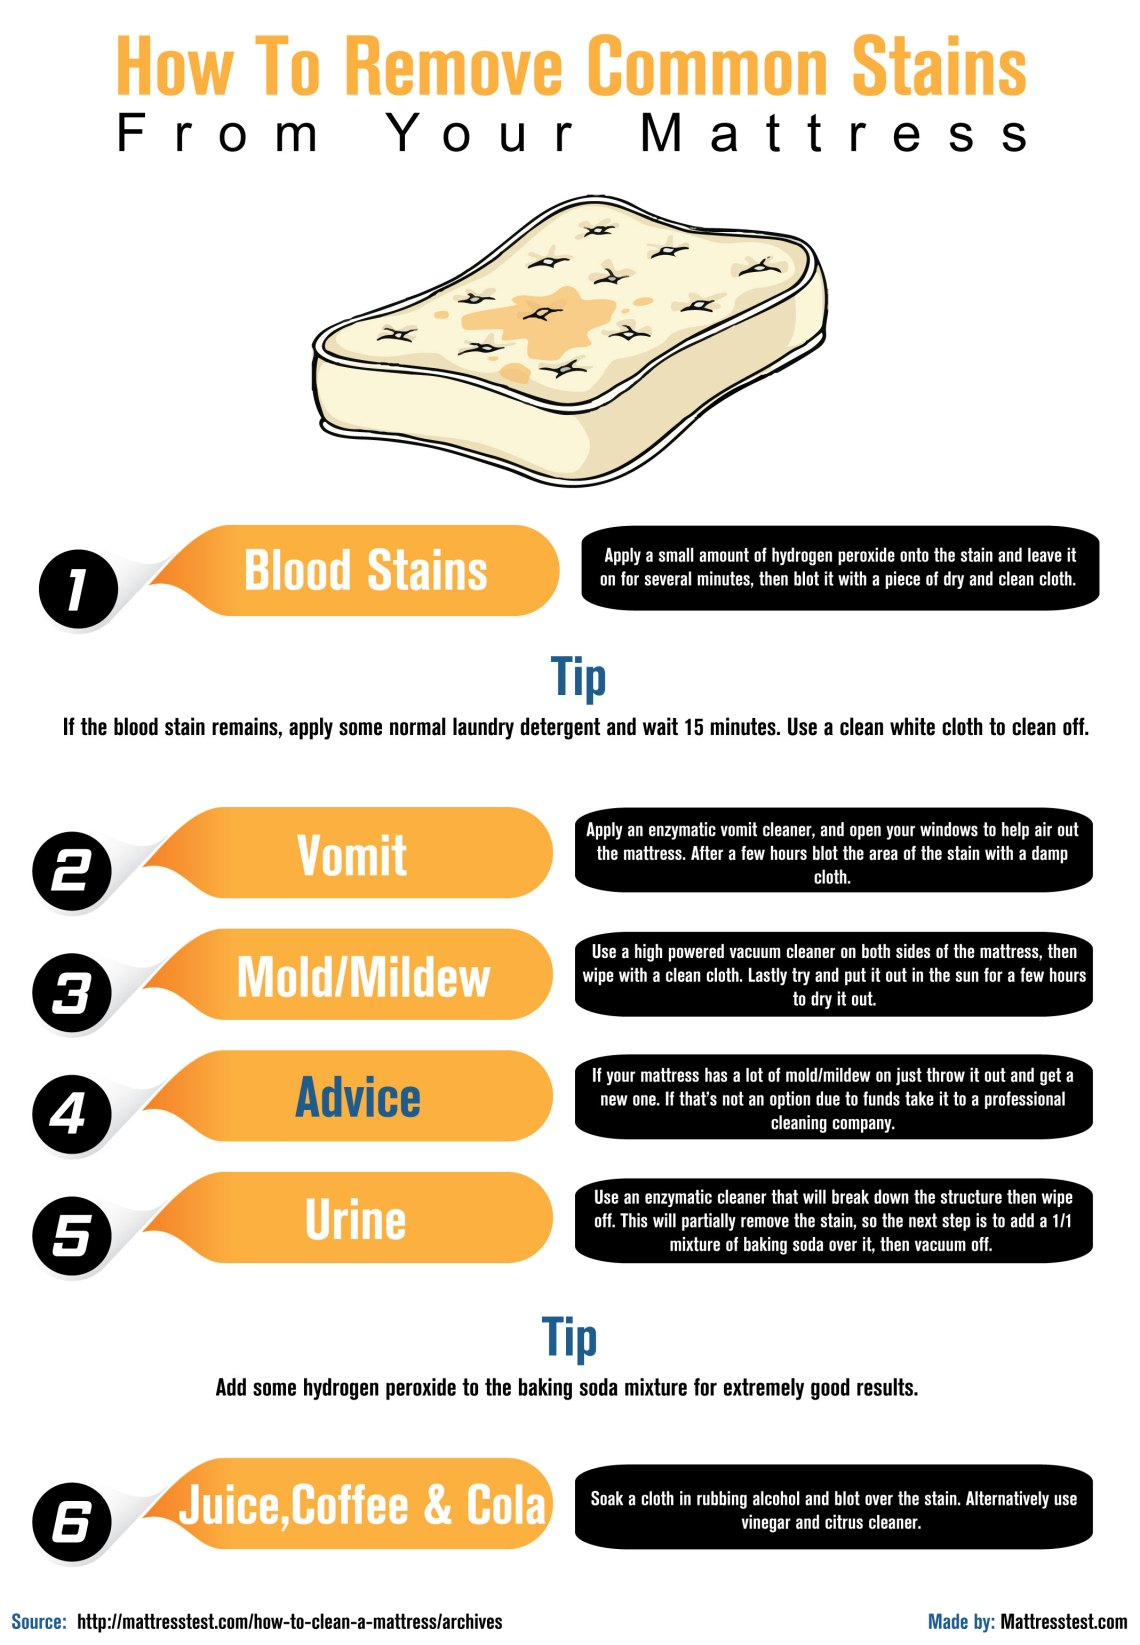 How To Remove Common Stains From Your Mattress [Infographic]